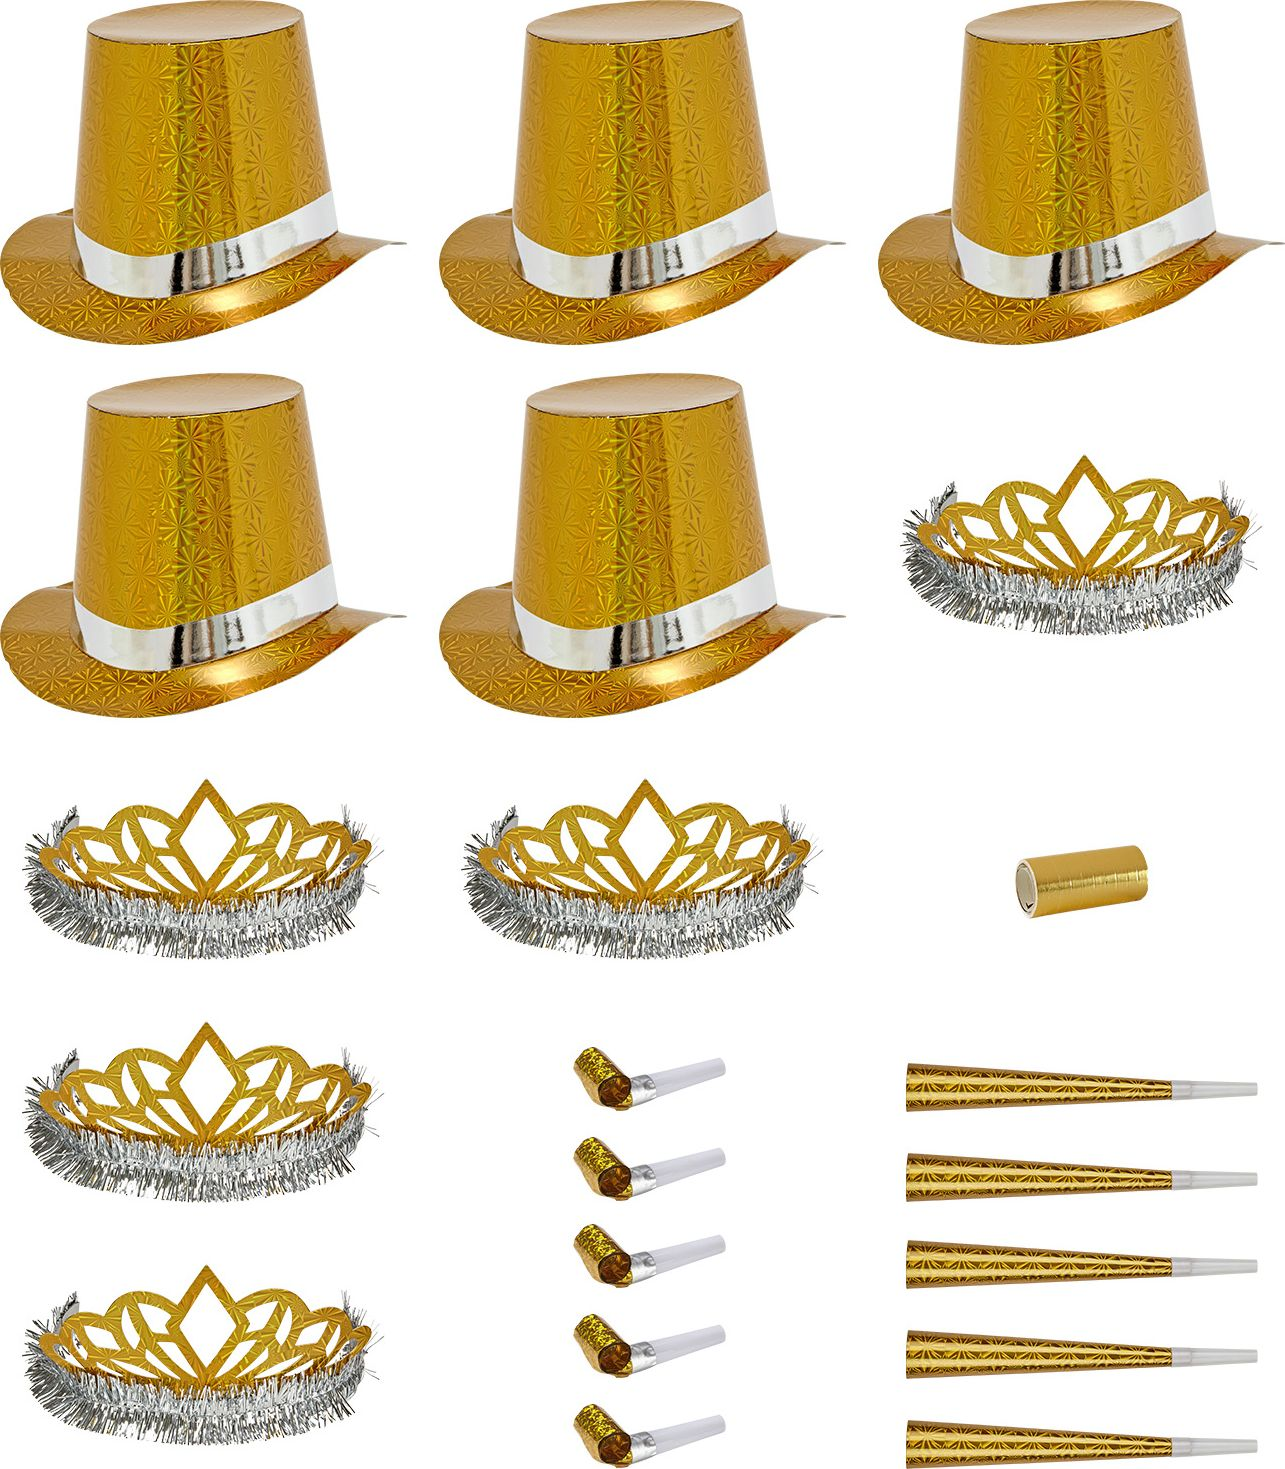 Gouden las vegas party set